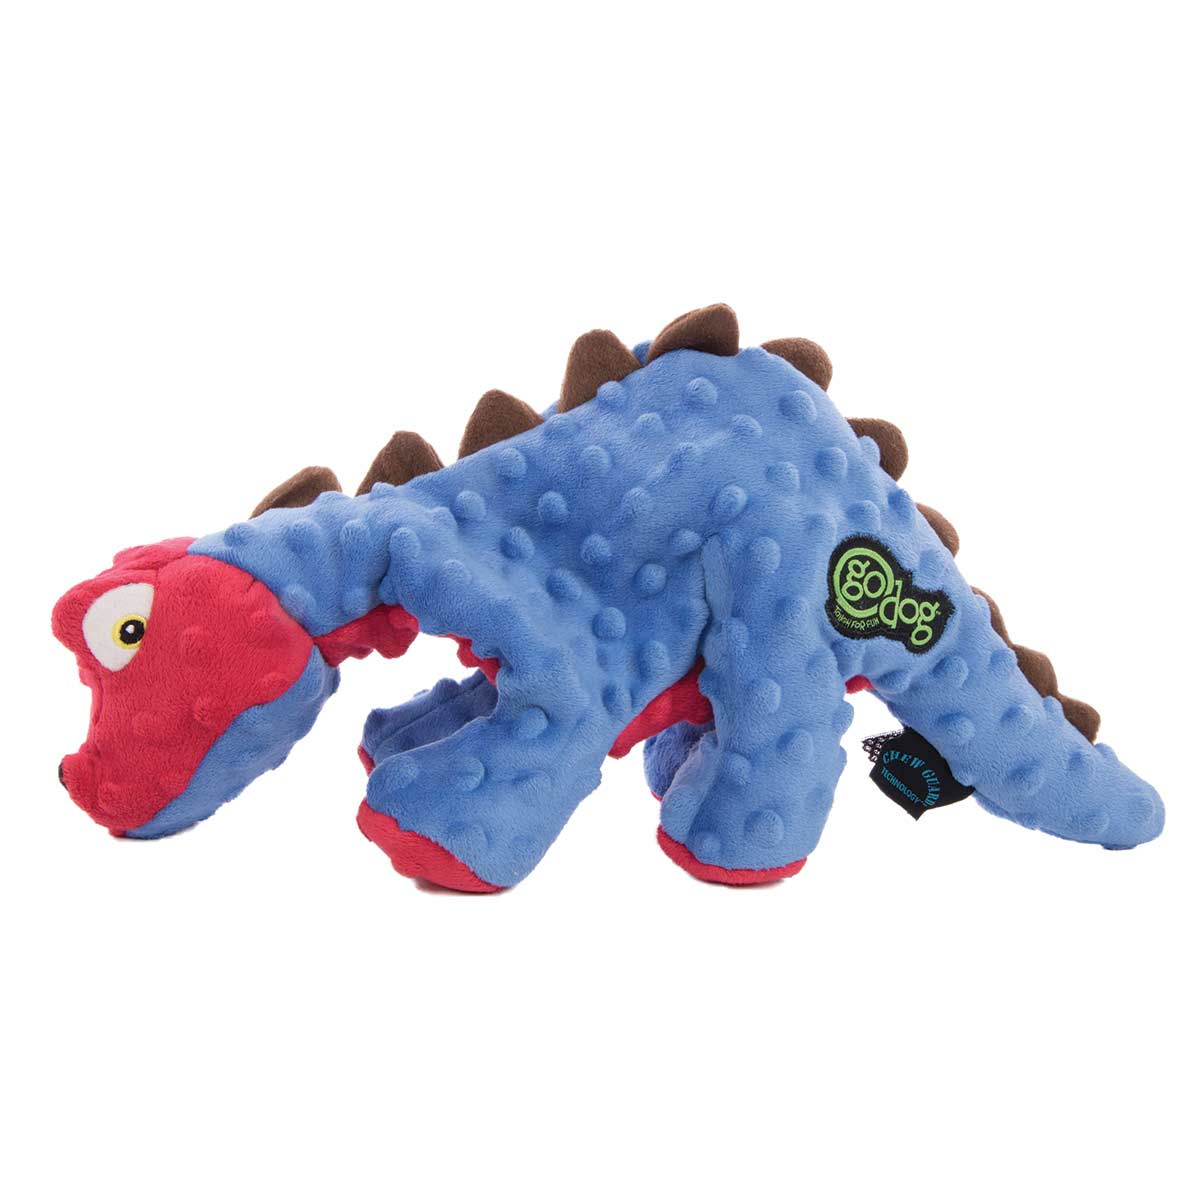 goDog Dinos Large Grunts Dog Toy - Large Spike